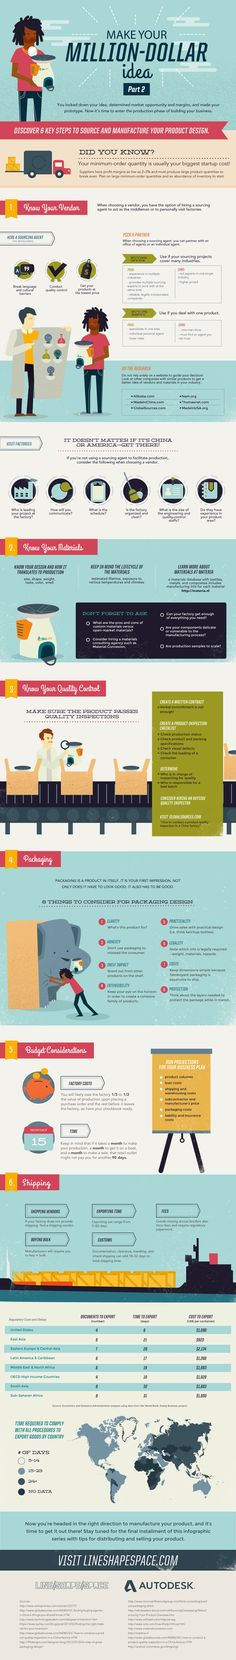 how to make your million-dollar idea #startup #innovation #social #inforgraphic